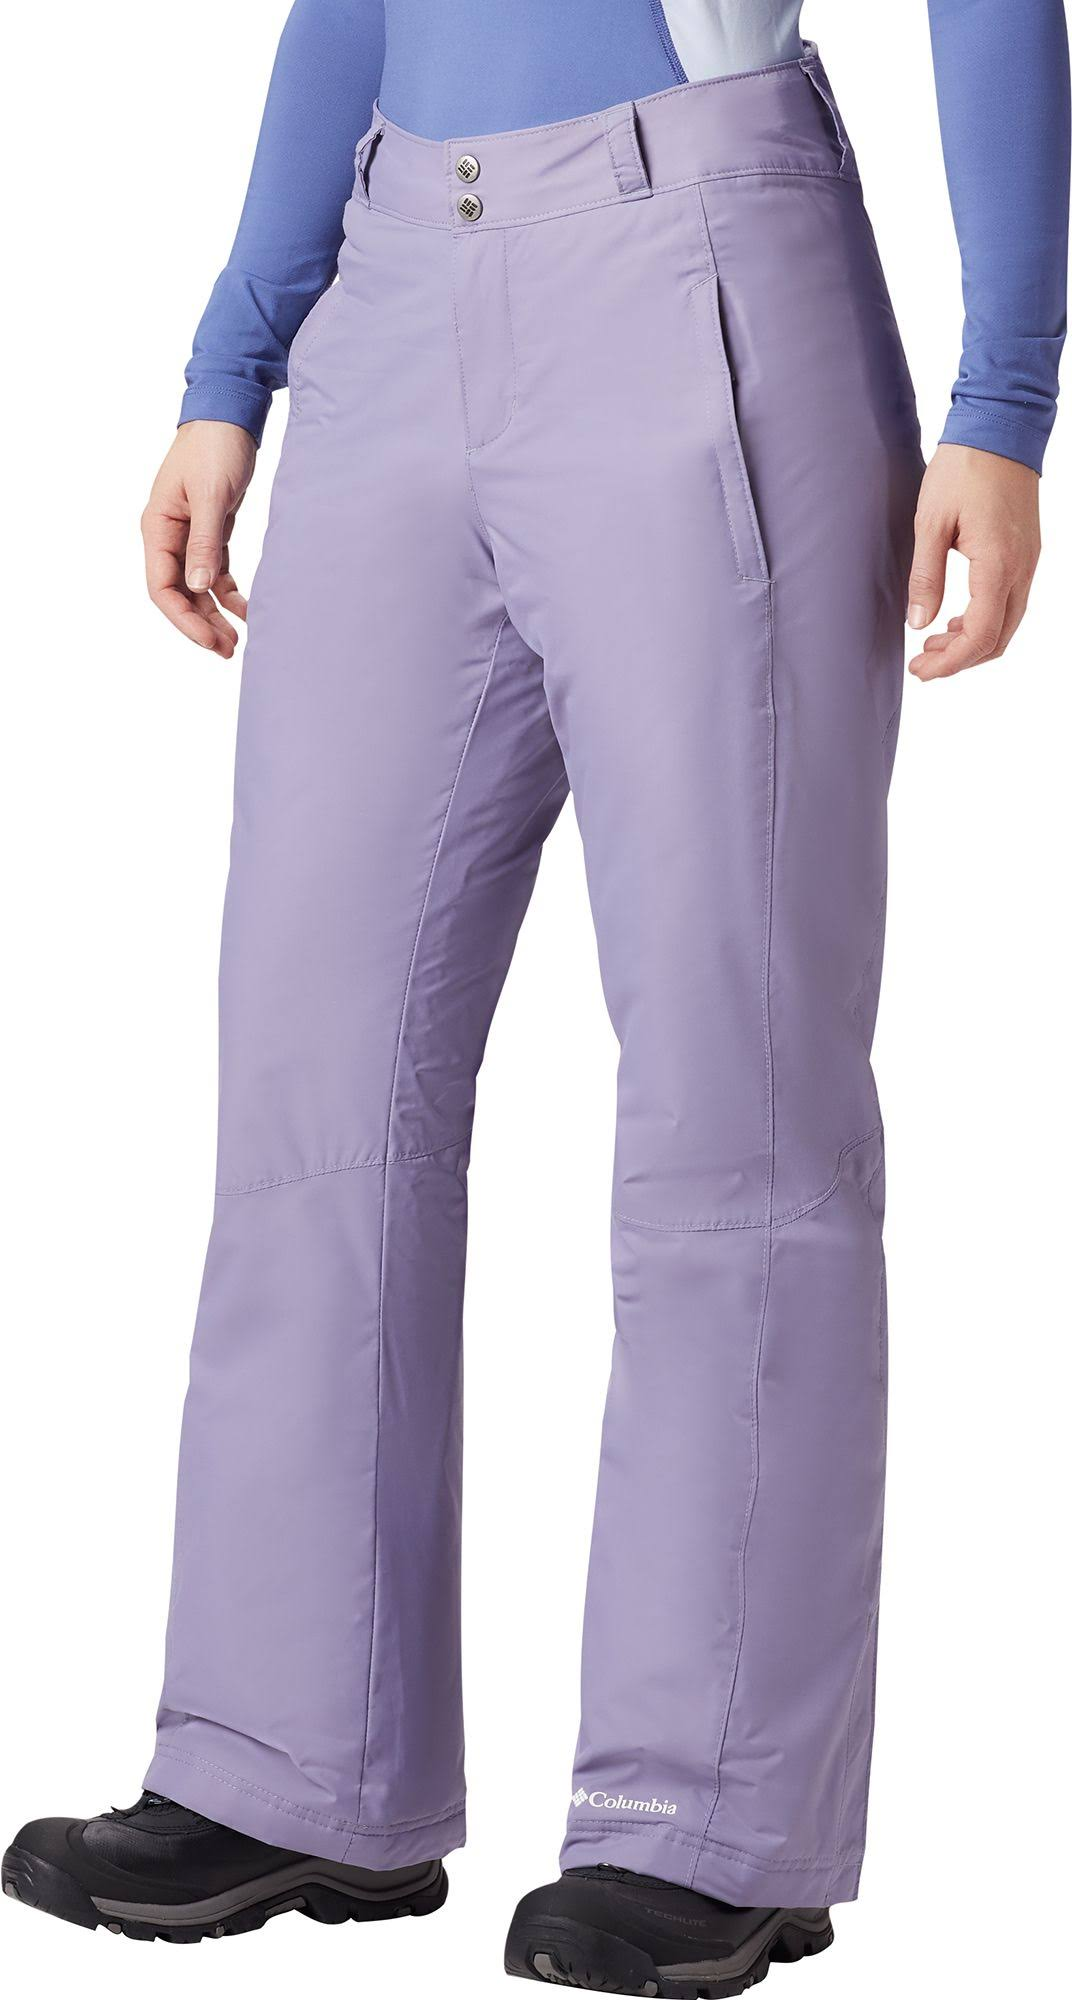 Columbia Women's Modern Mountain 2.0 Pants, Size: 2XL, Dusty Iris